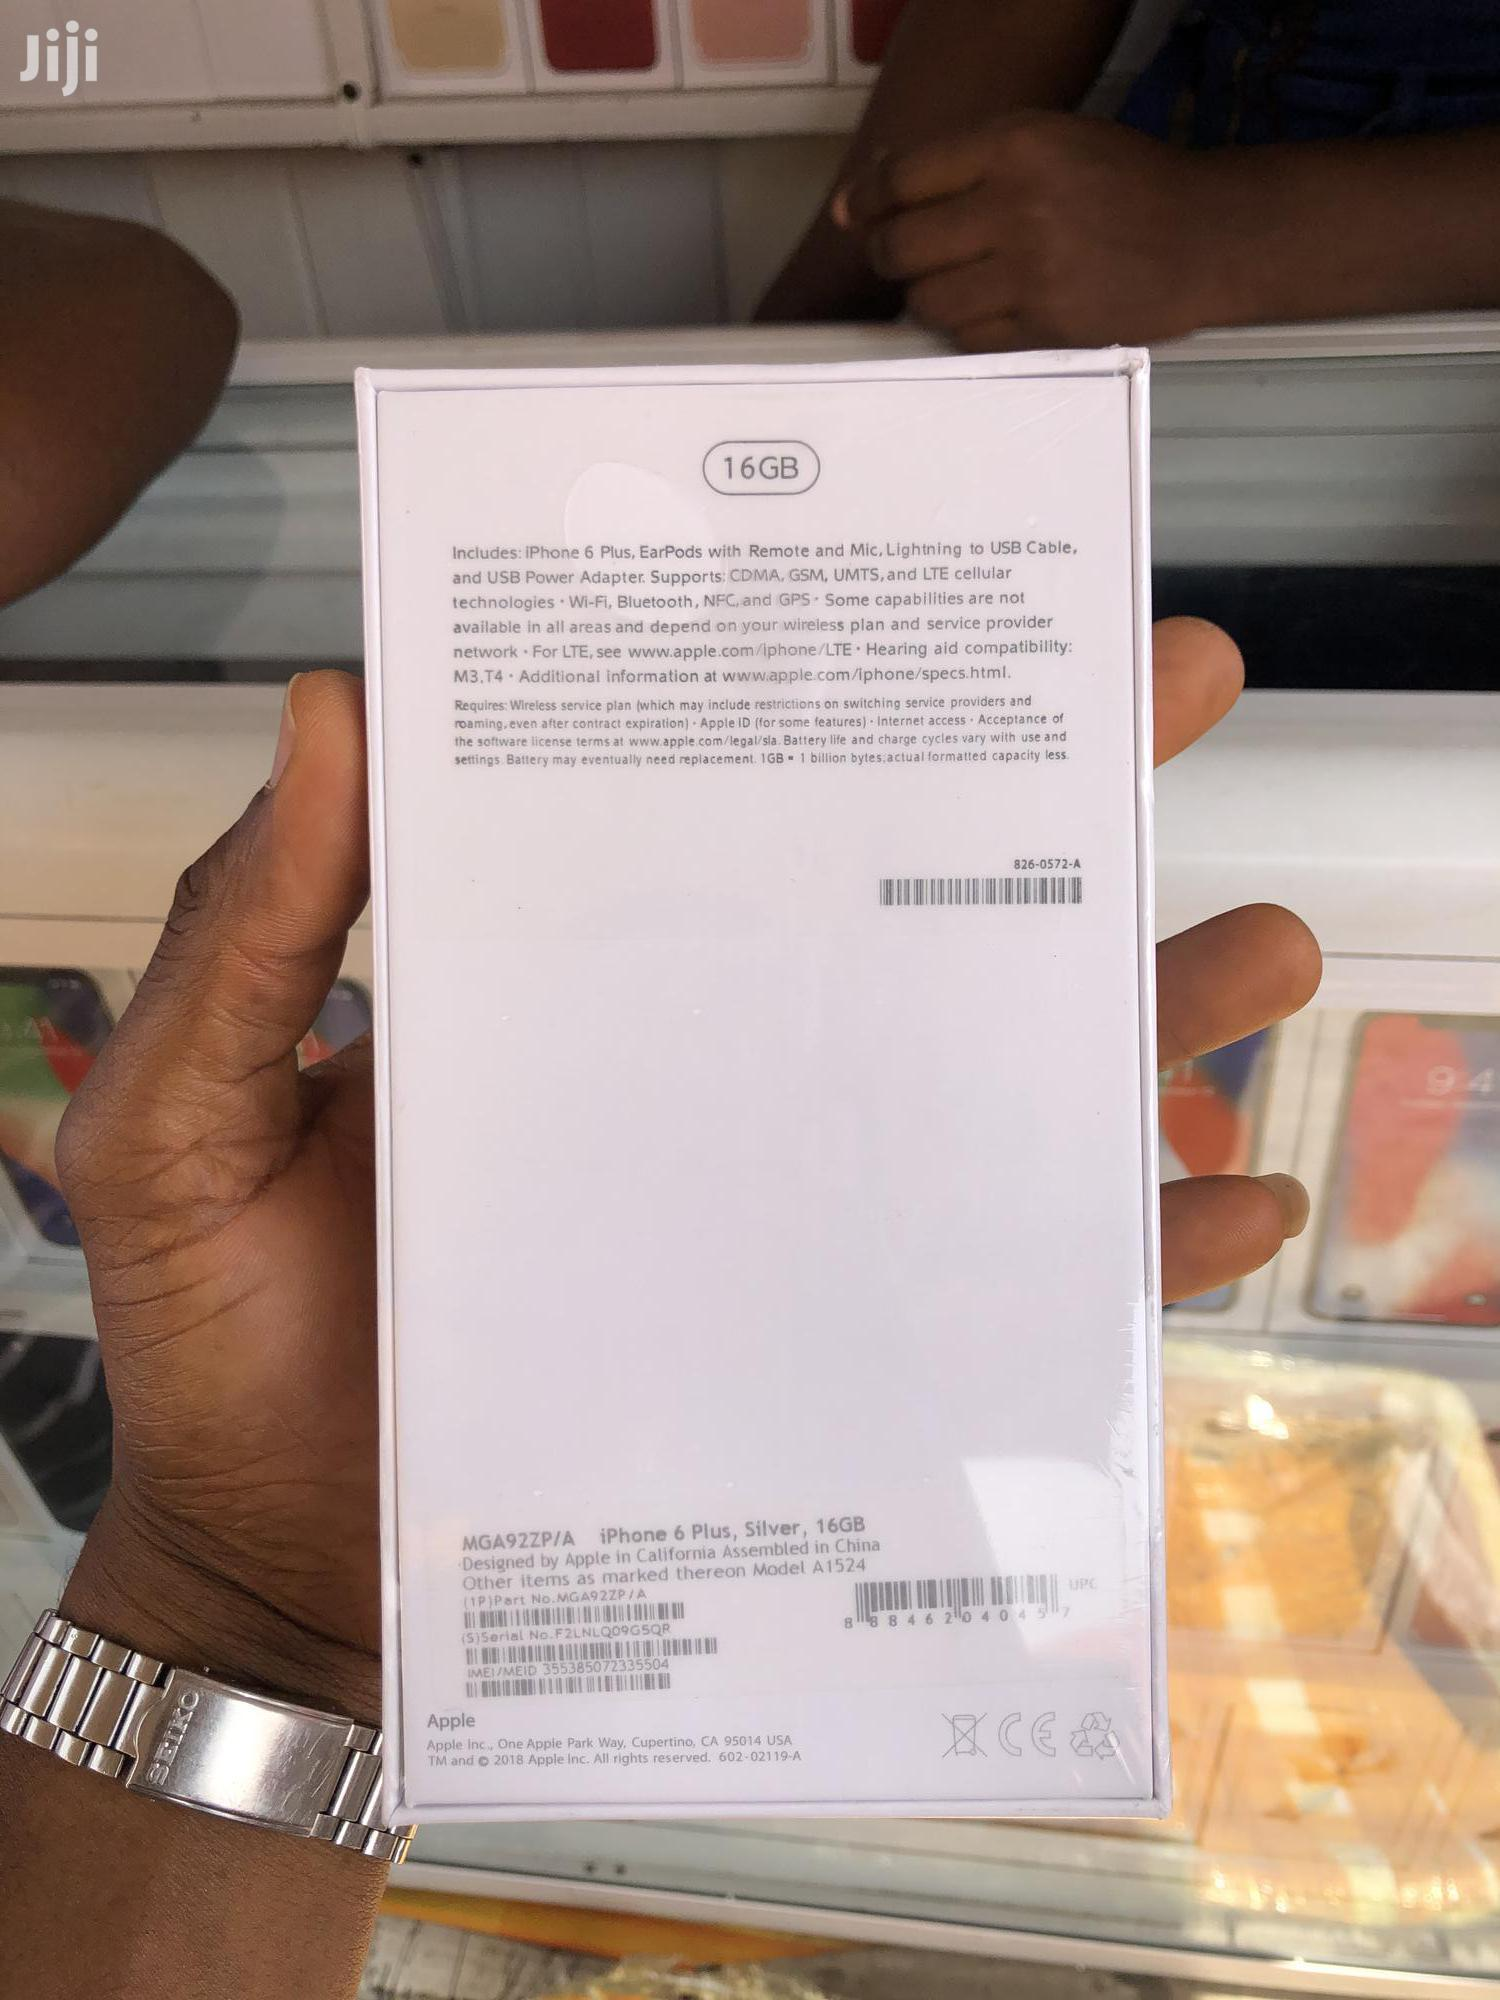 New Apple iPhone 6 Plus 16 GB   Mobile Phones for sale in Airport Residential Area, Greater Accra, Ghana